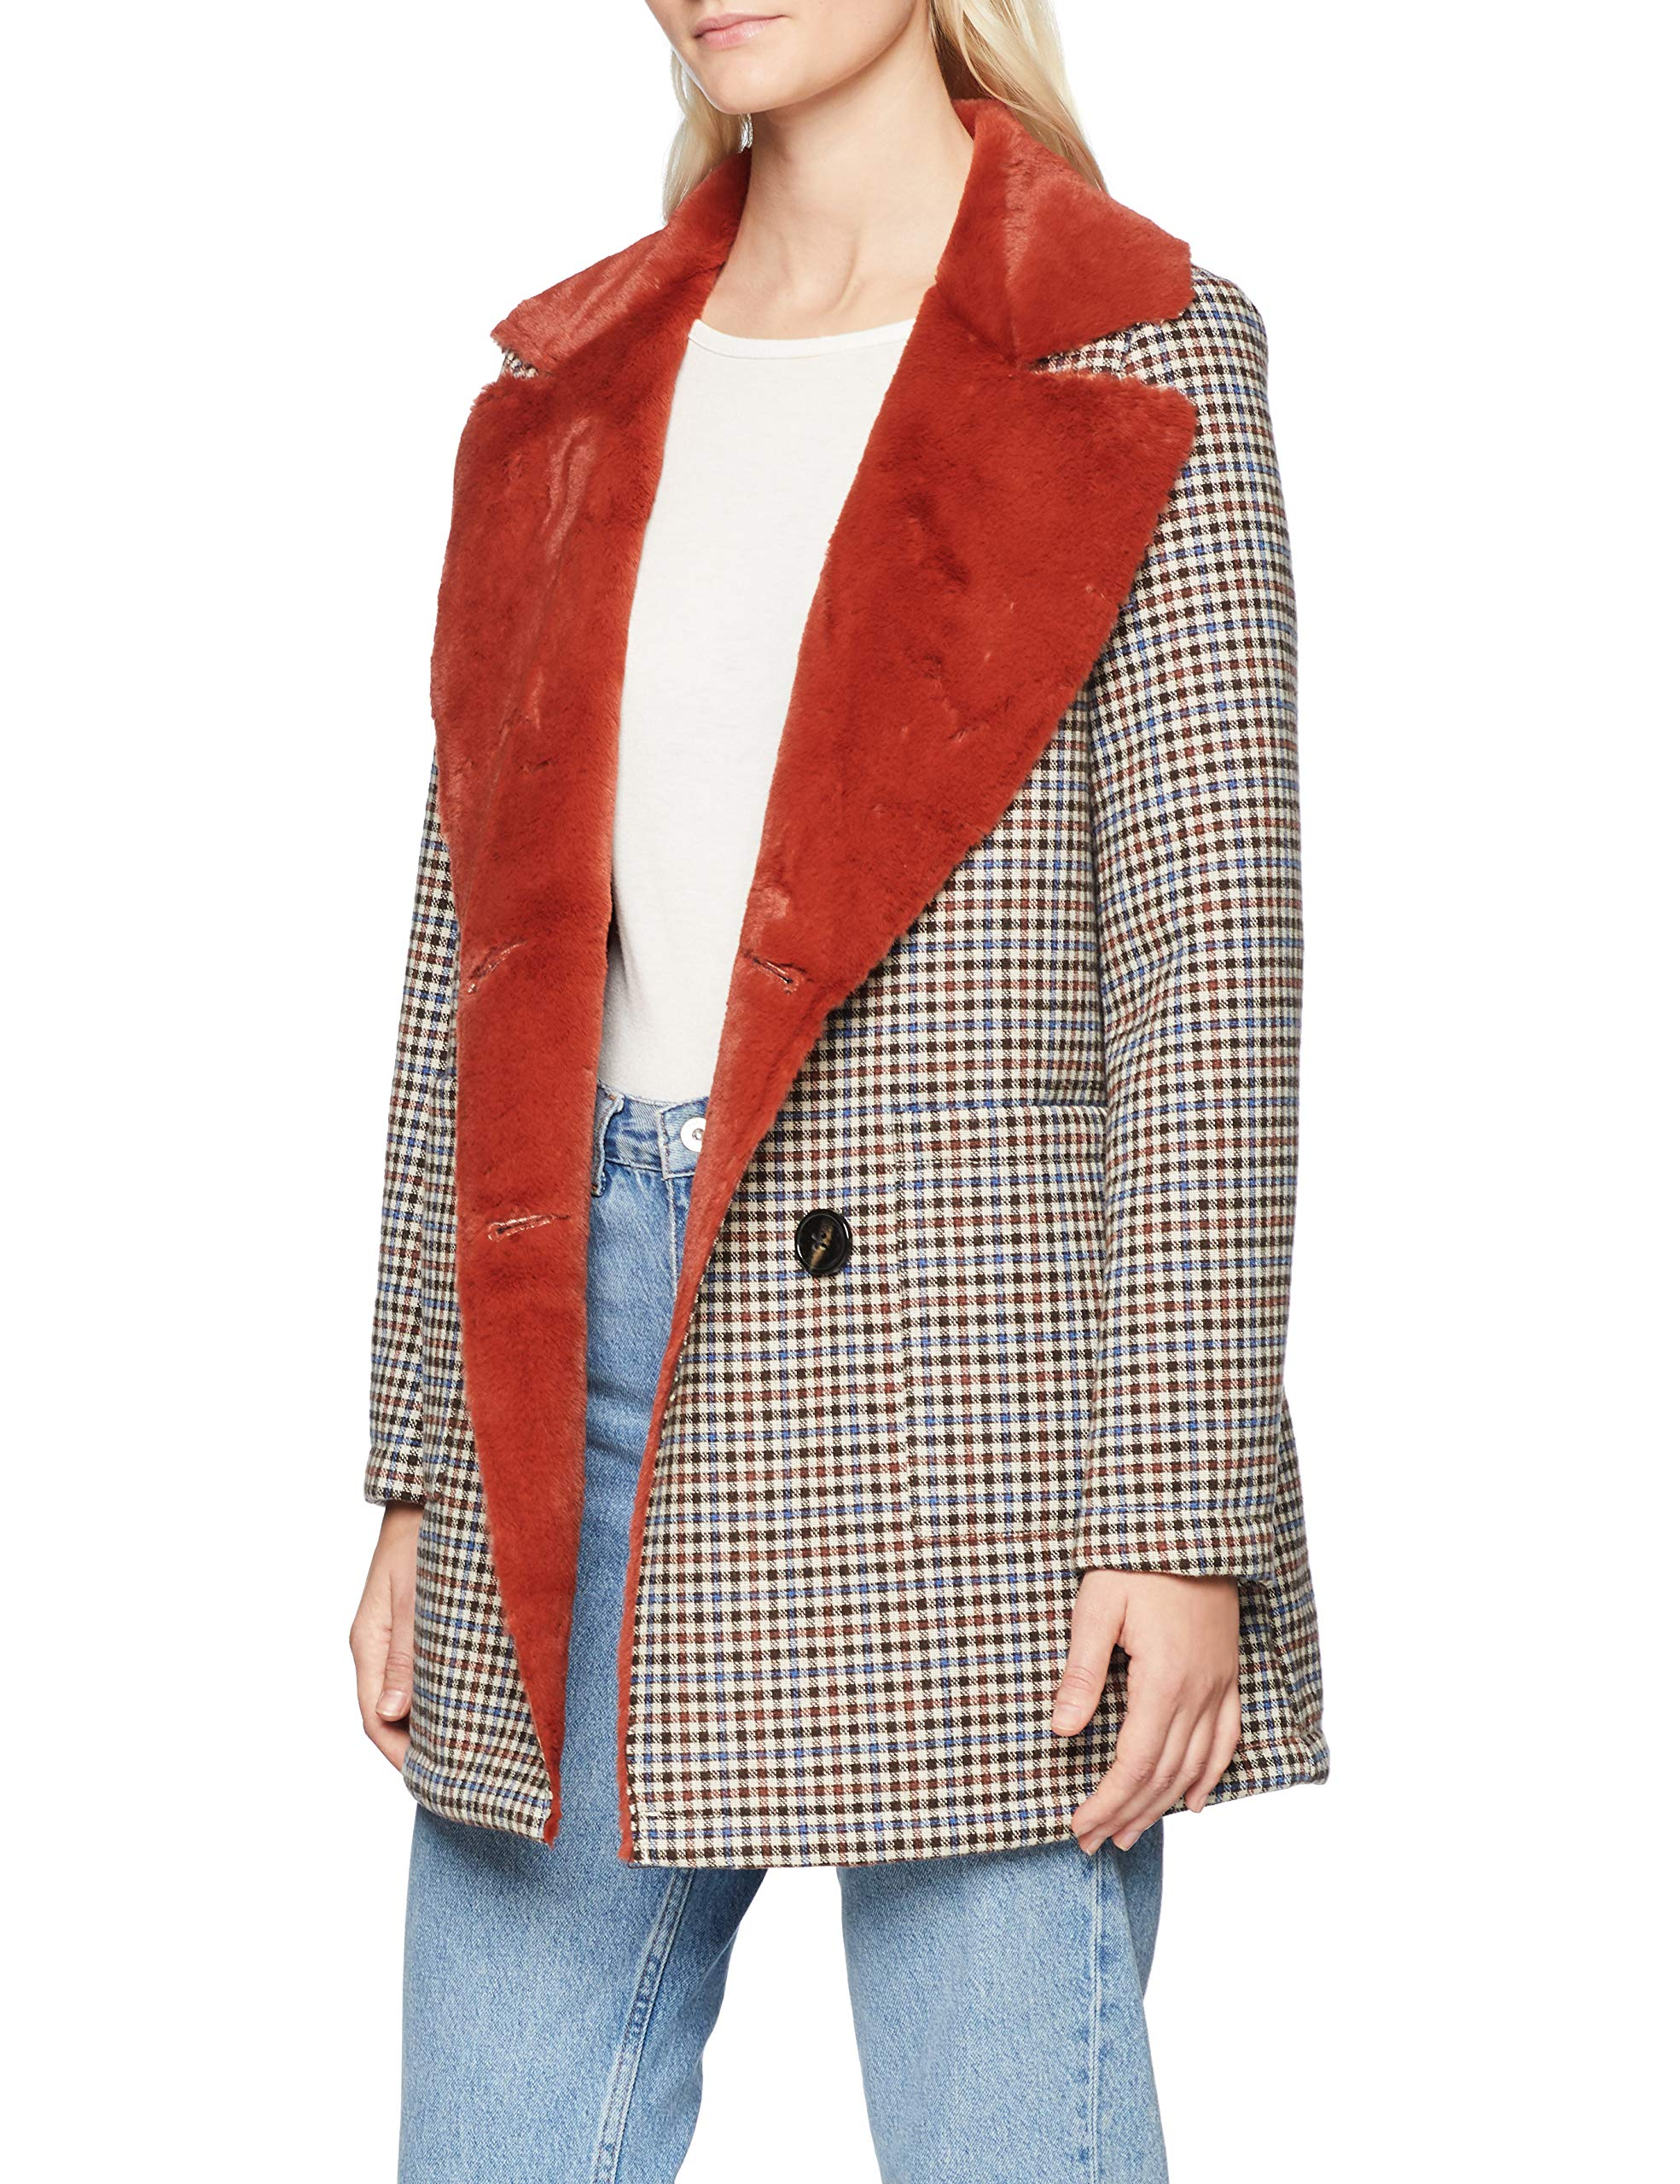 Coat amp;royal 26044 ManteauMarrondark Fur Cinnamon Double Rich Femme Check Face HDIE92